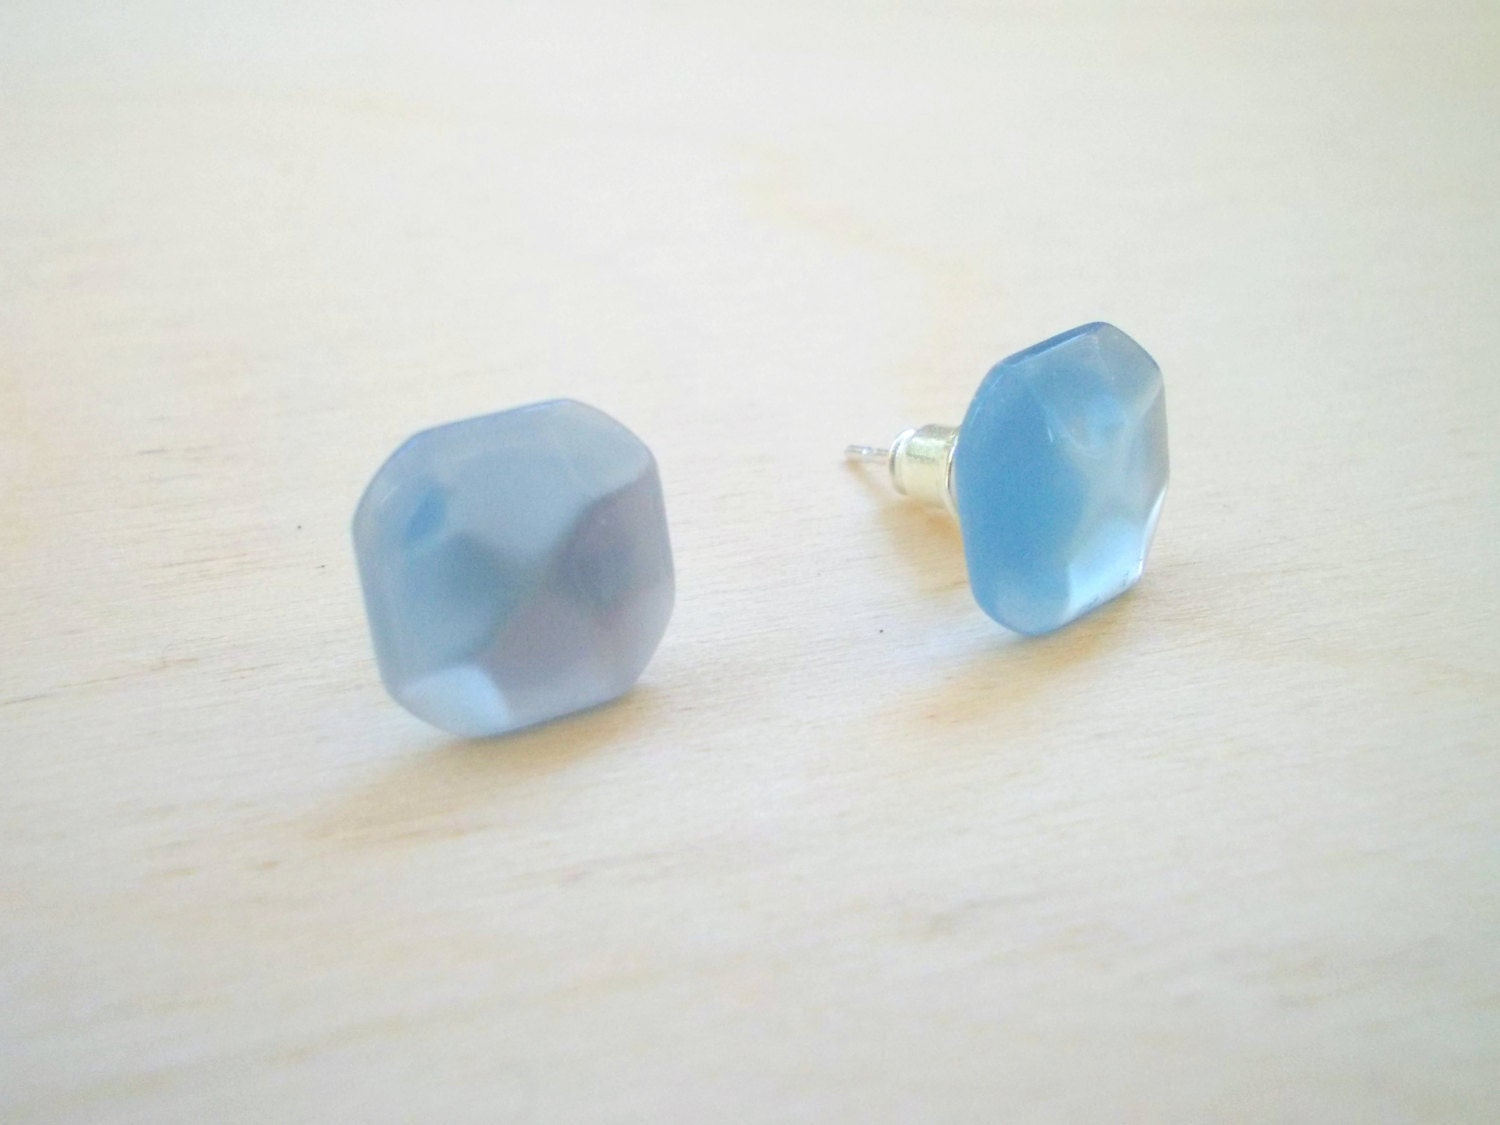 Blue Earring Posts , Light Blue Tiny Cube Earrings Studs , Geometry Fashion, Everyday Jewelry, Under 15 20 25 - EfZinCreations